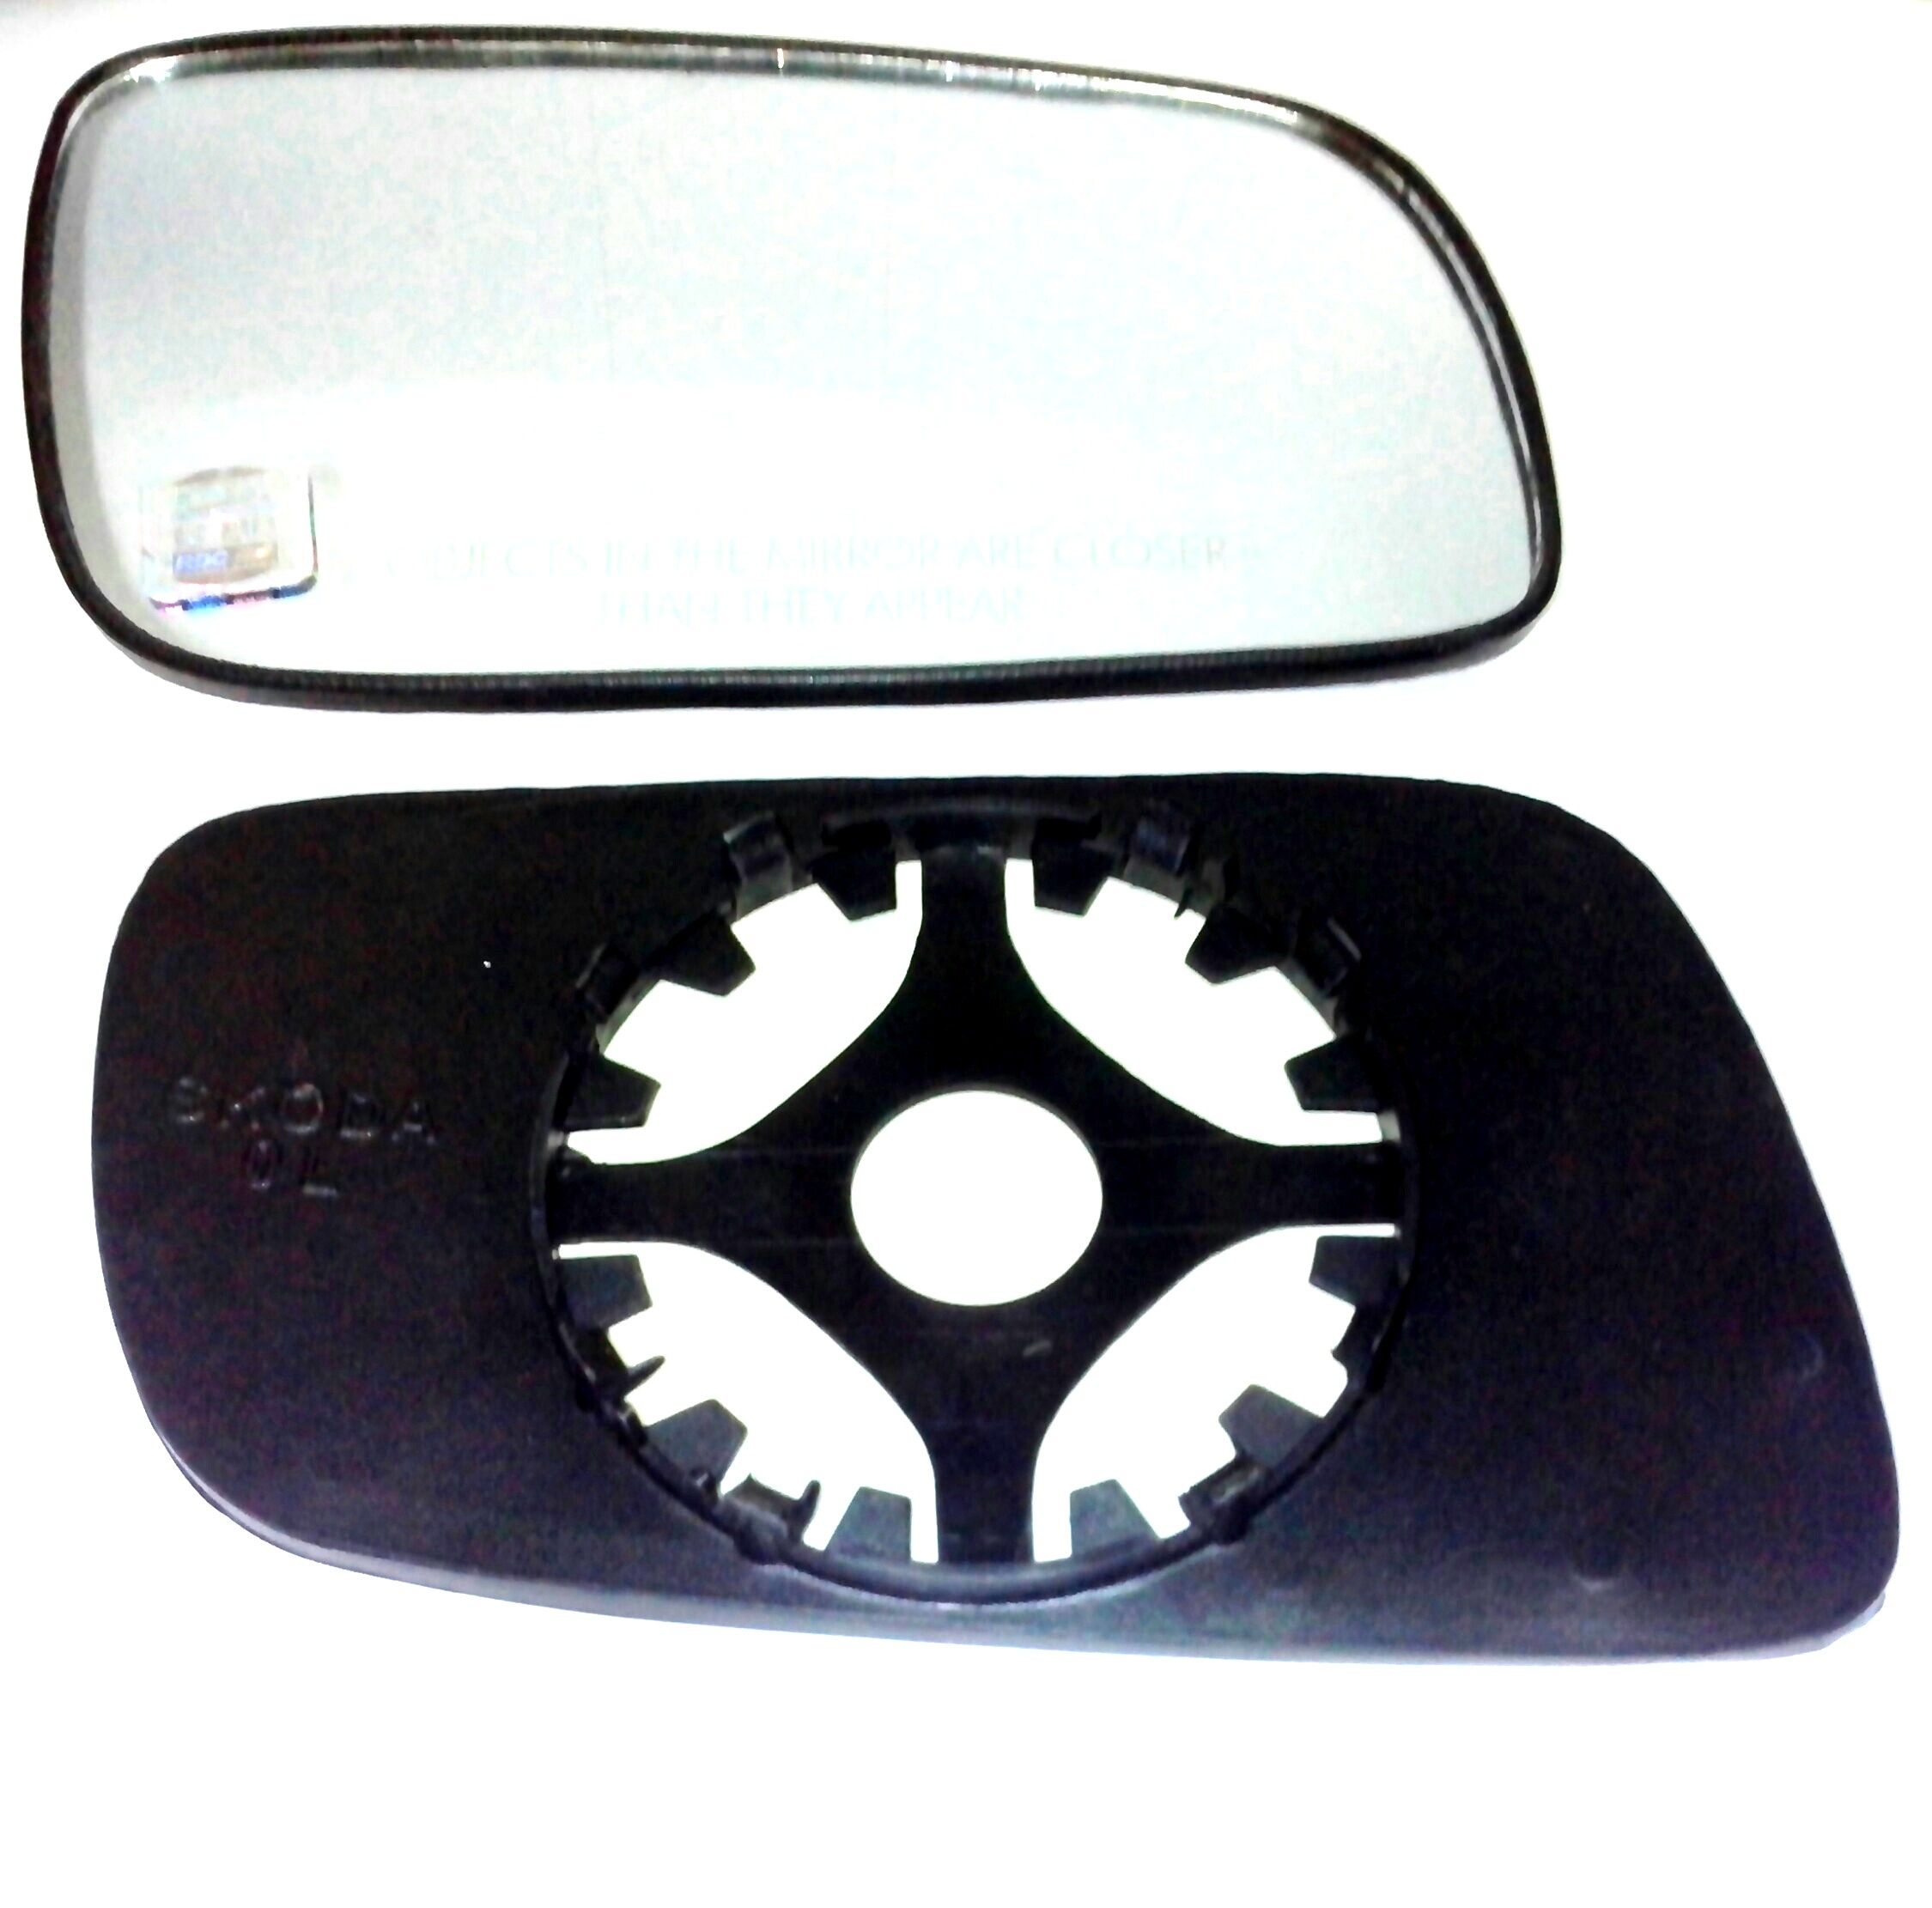 MANTRA-CONVEX MIRROR PLATES (SUB MIRROR PLATES) FOR HYUNDAI VERNA T-2 LEFT SIDE